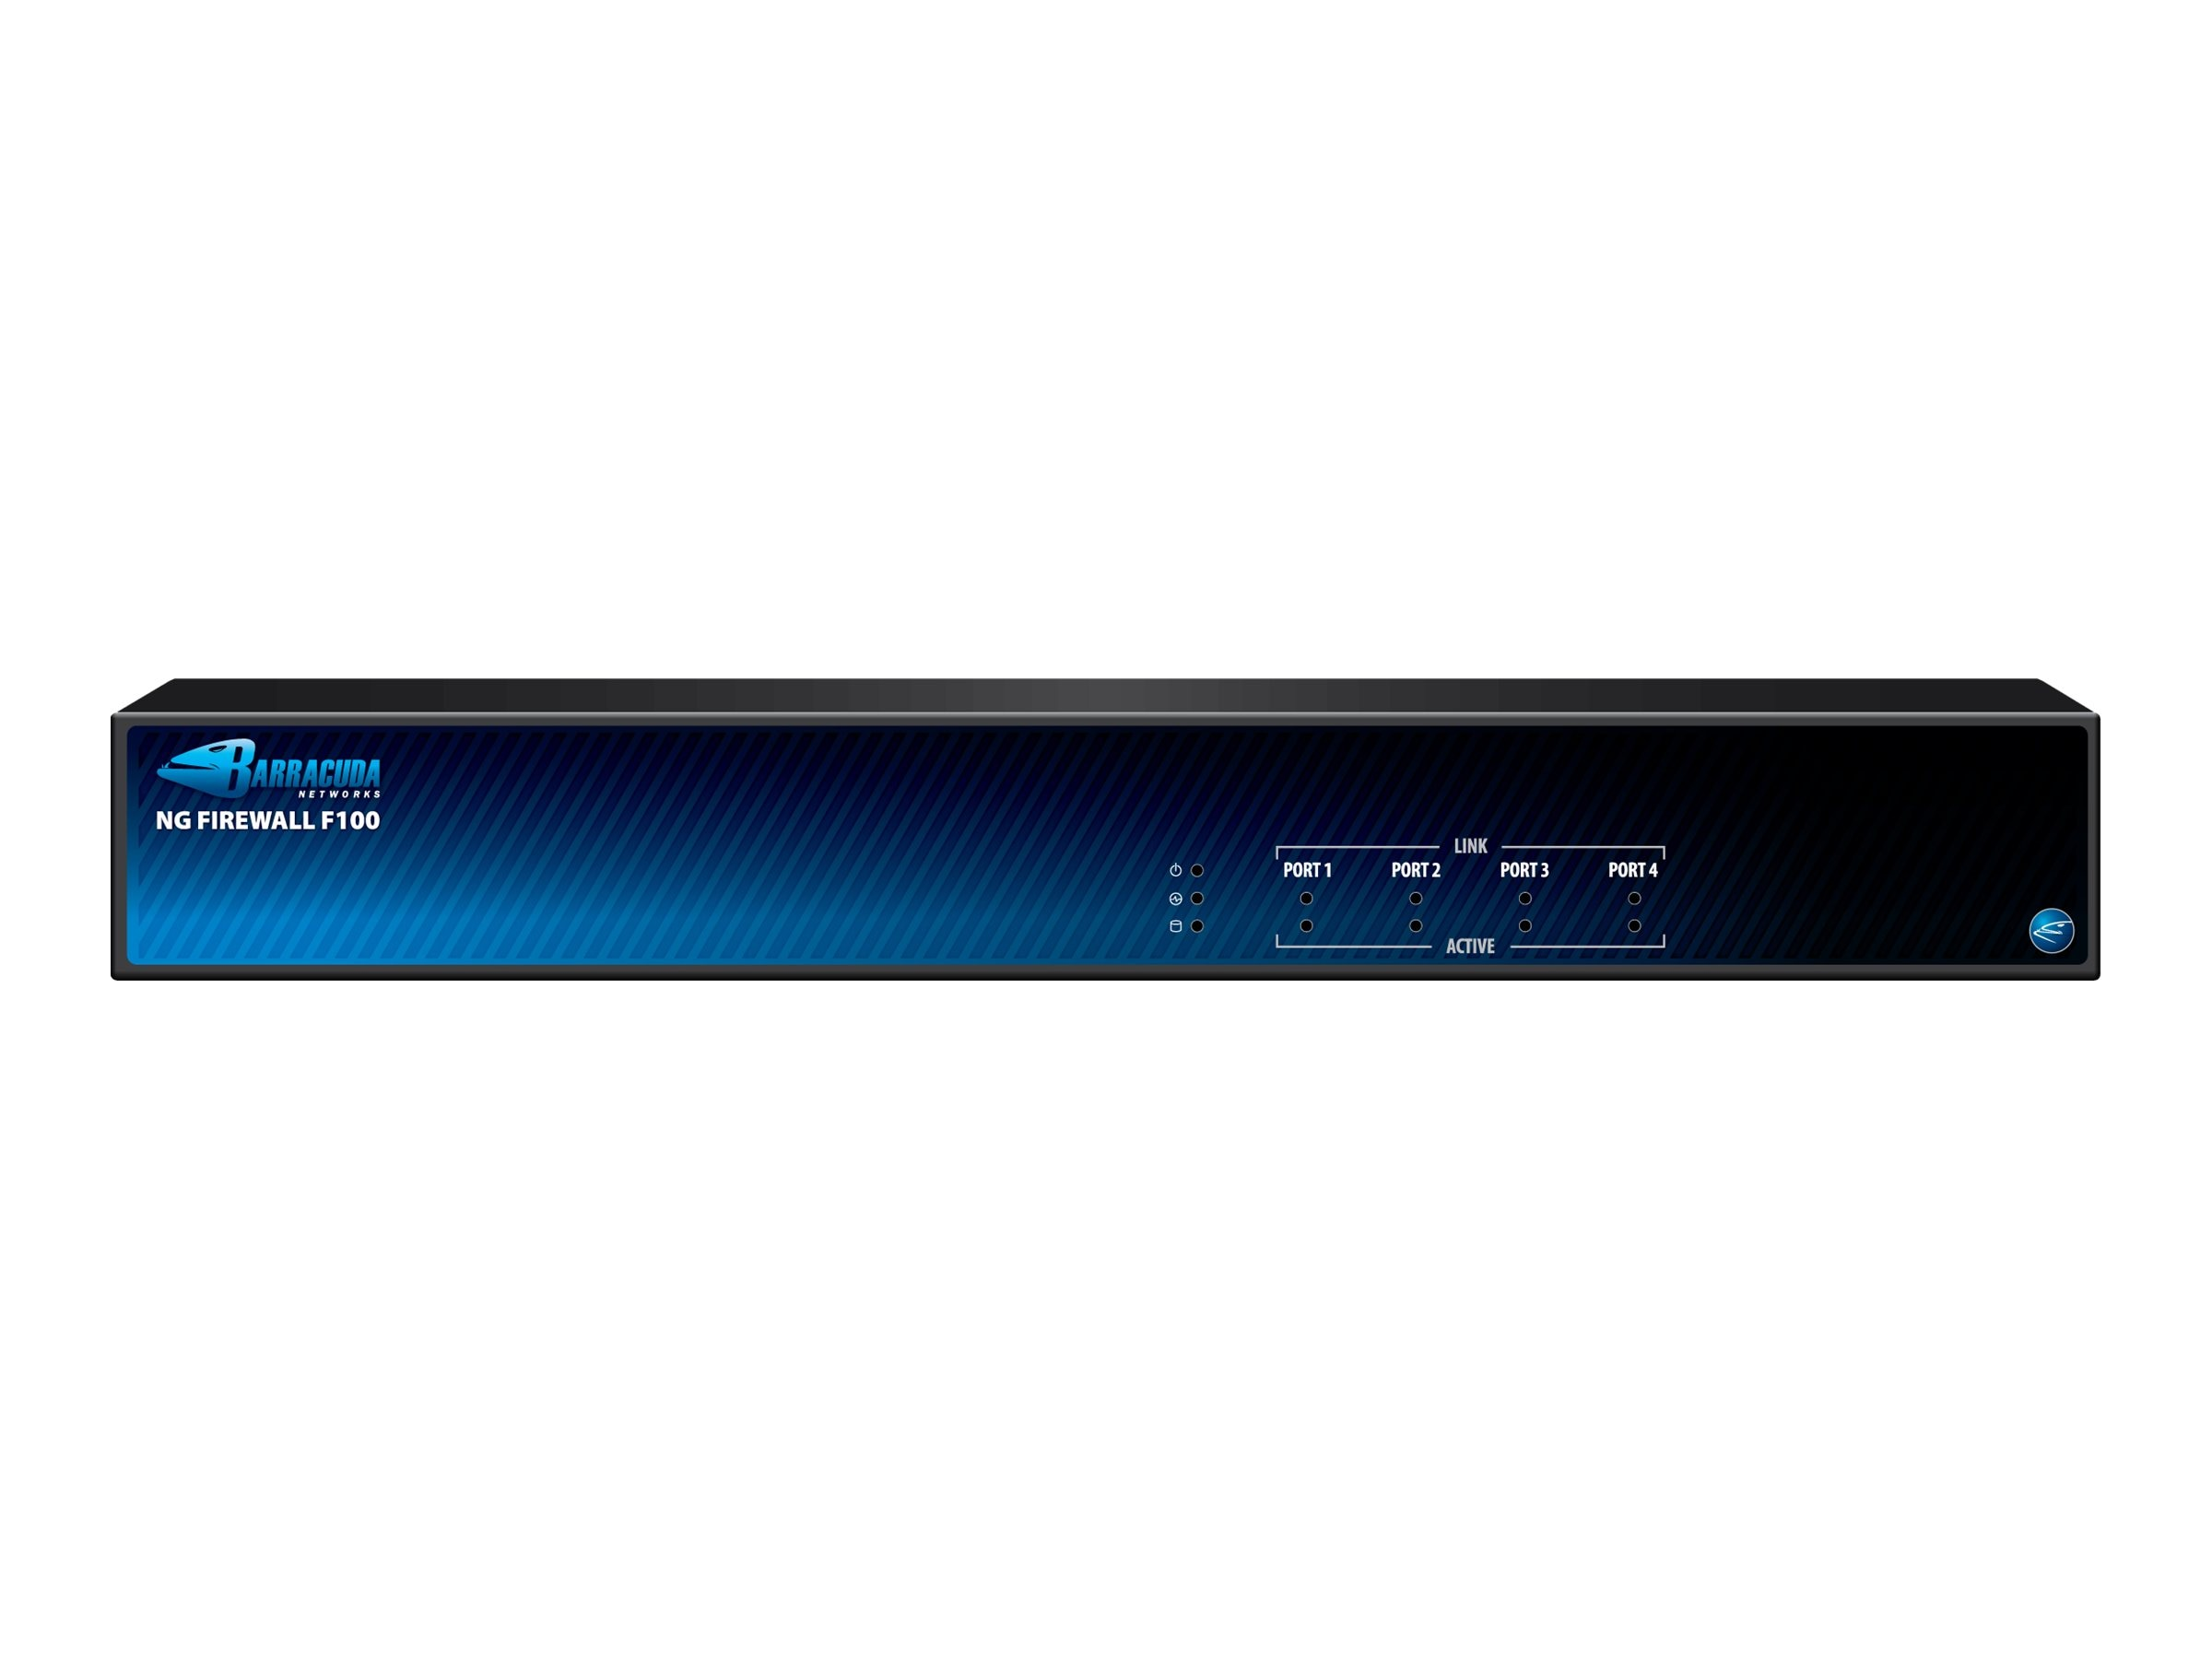 Barracuda NG Firewall F101 (WiFi Bundle) with 3 Year Energize Updates, BNGF101A3, 13470781, Network Firewall/VPN - Hardware